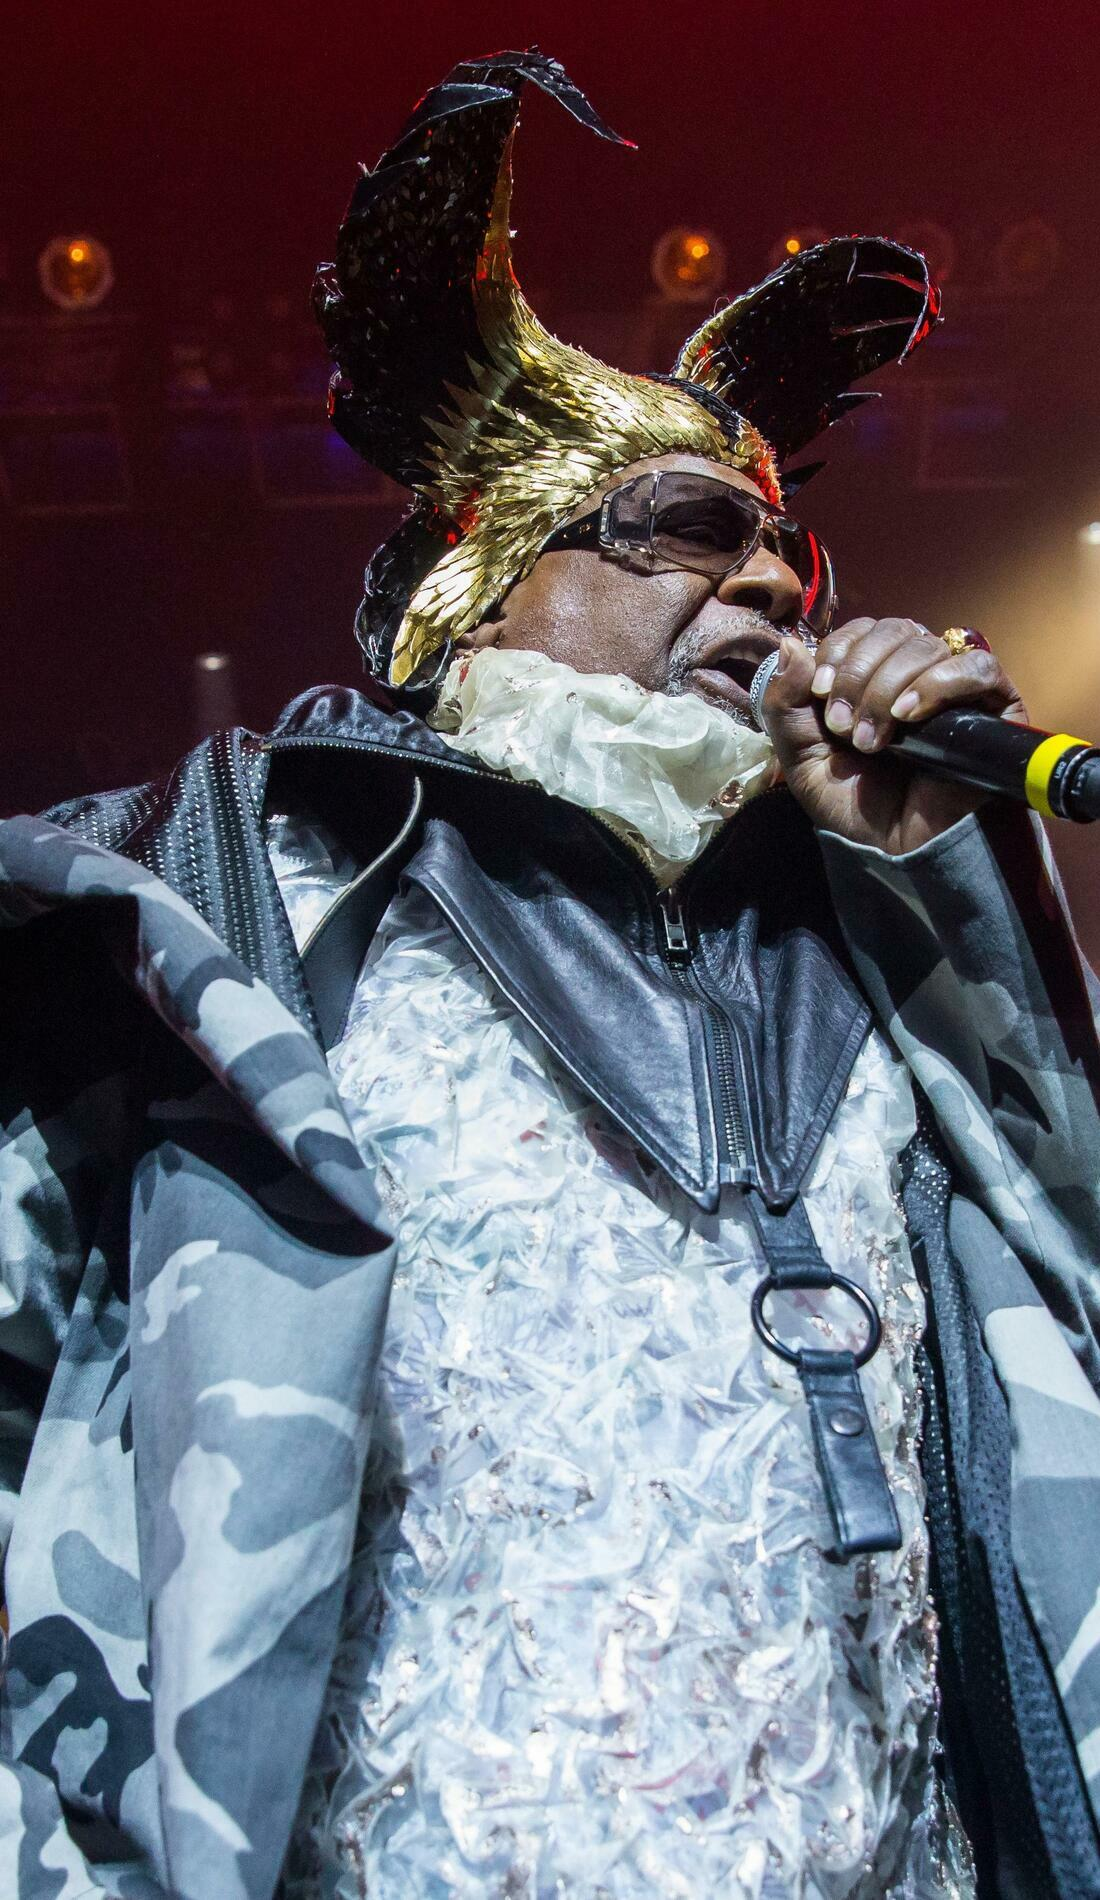 A George Clinton live event